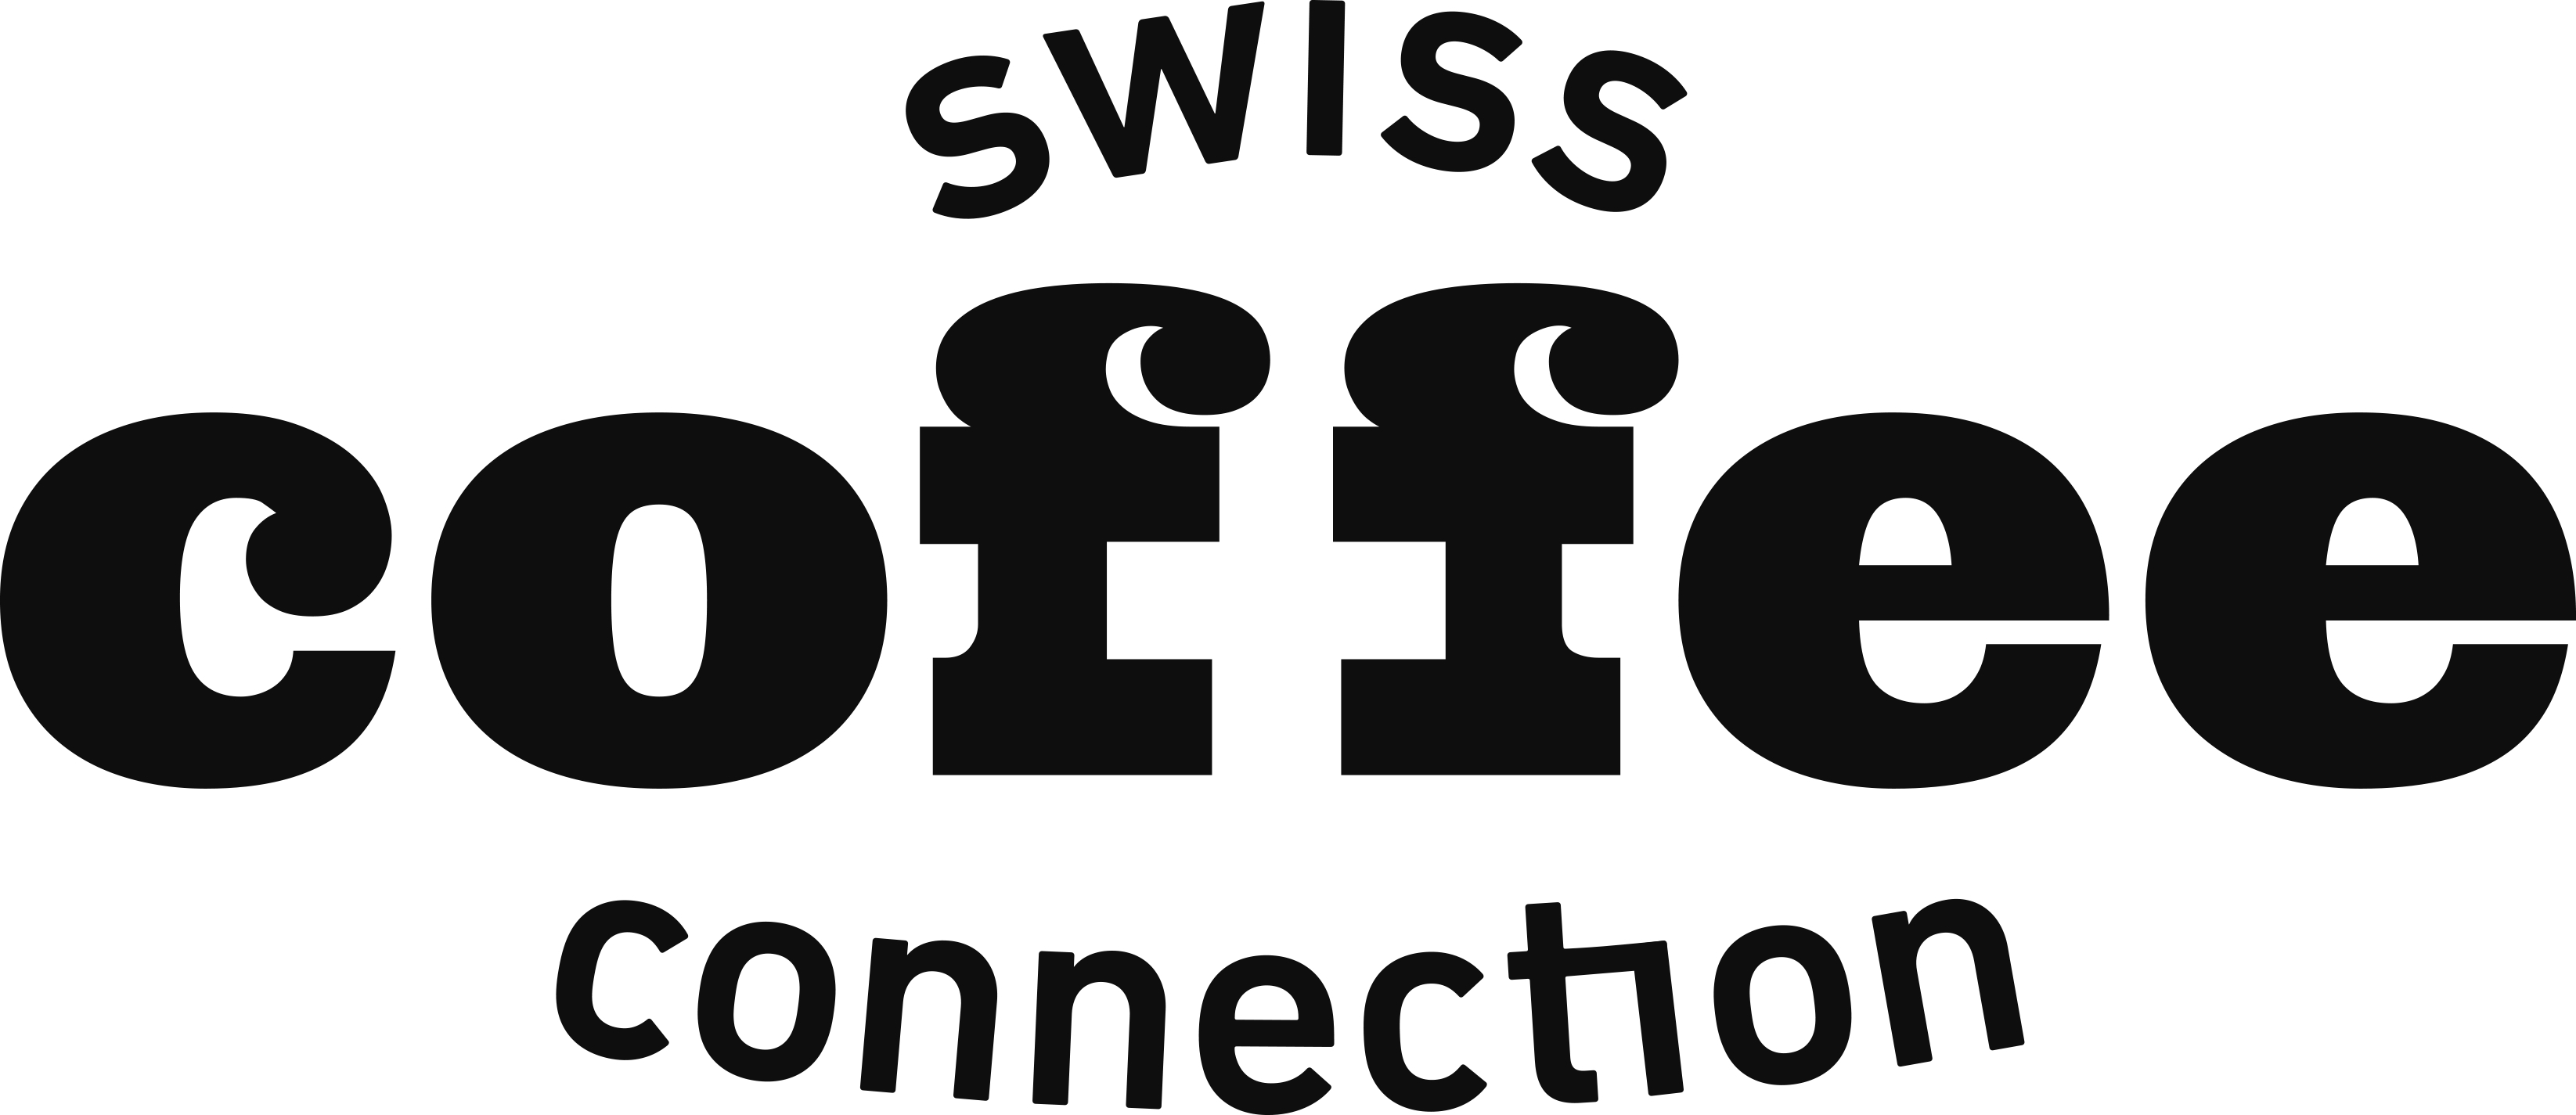 SWISS_COFFEE_CONNECTION_Logos_NB_vect